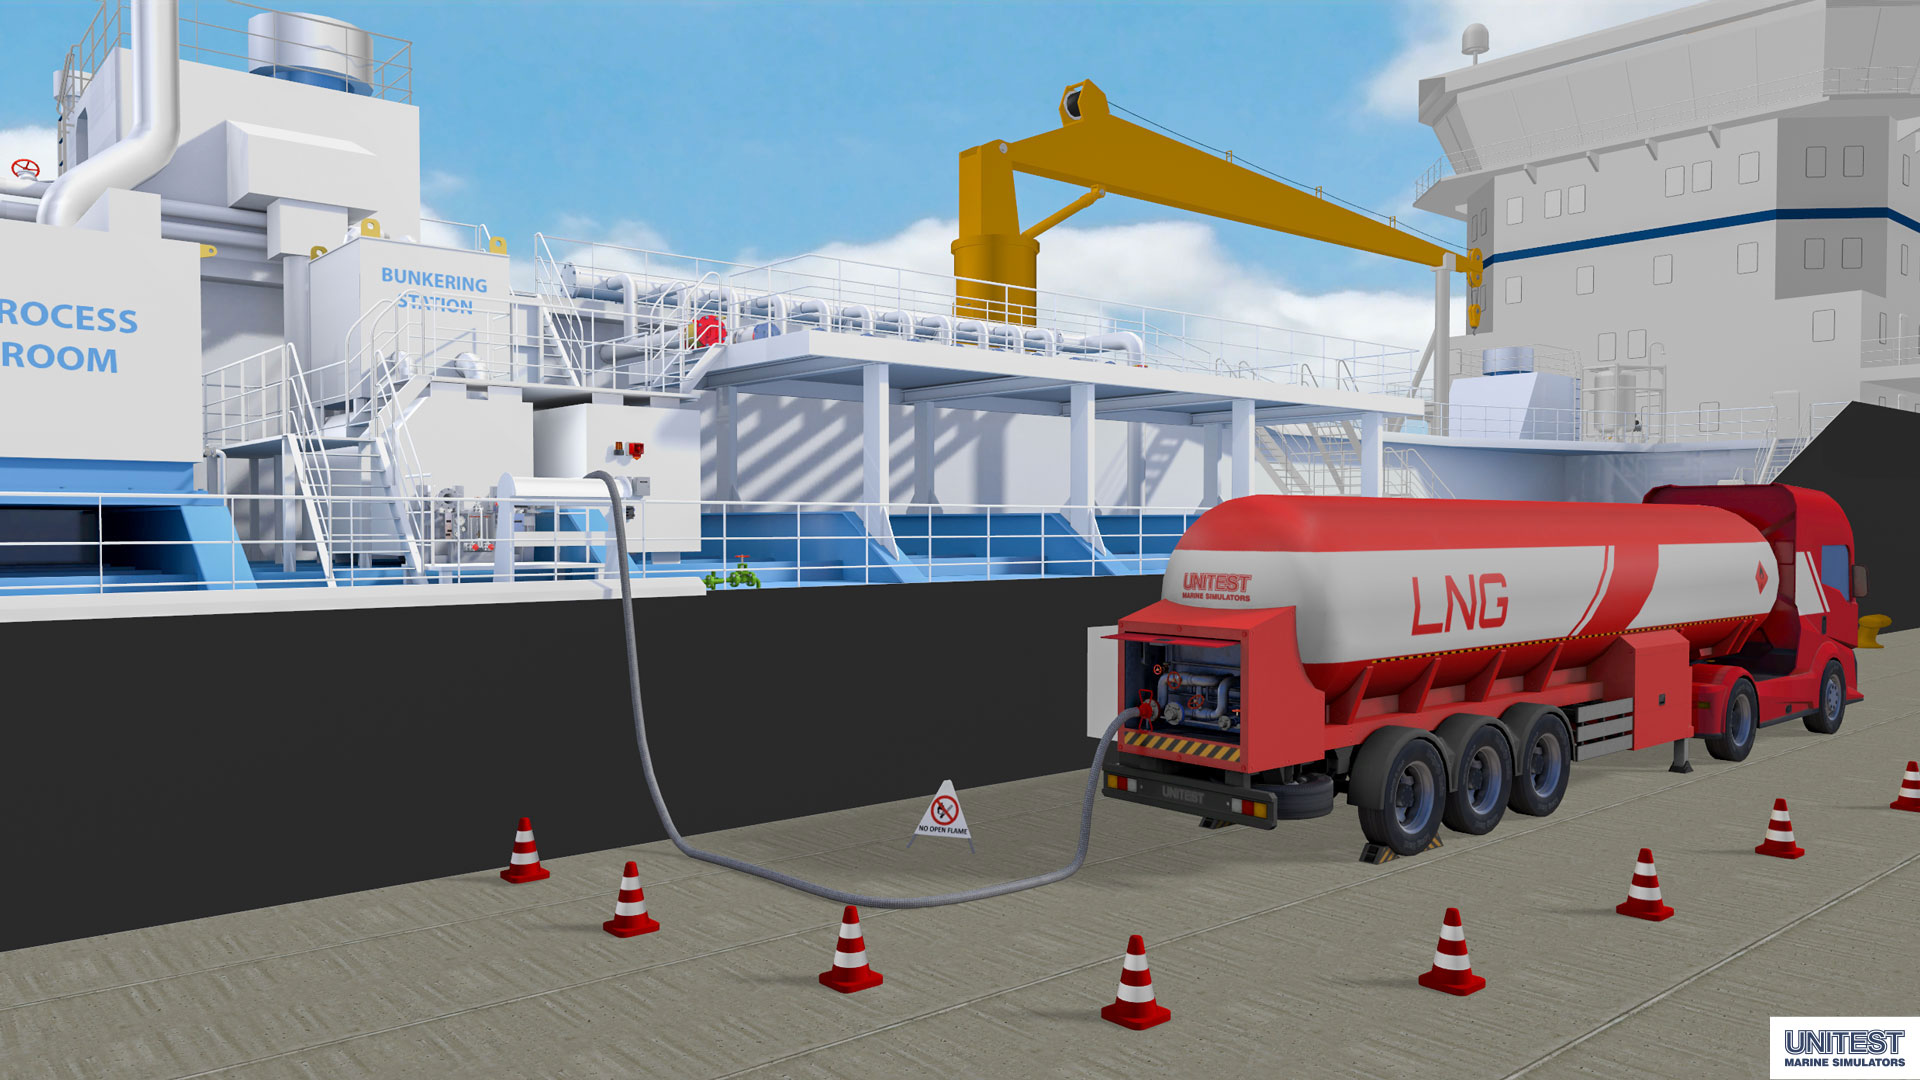 Truck-to-ship bunkering